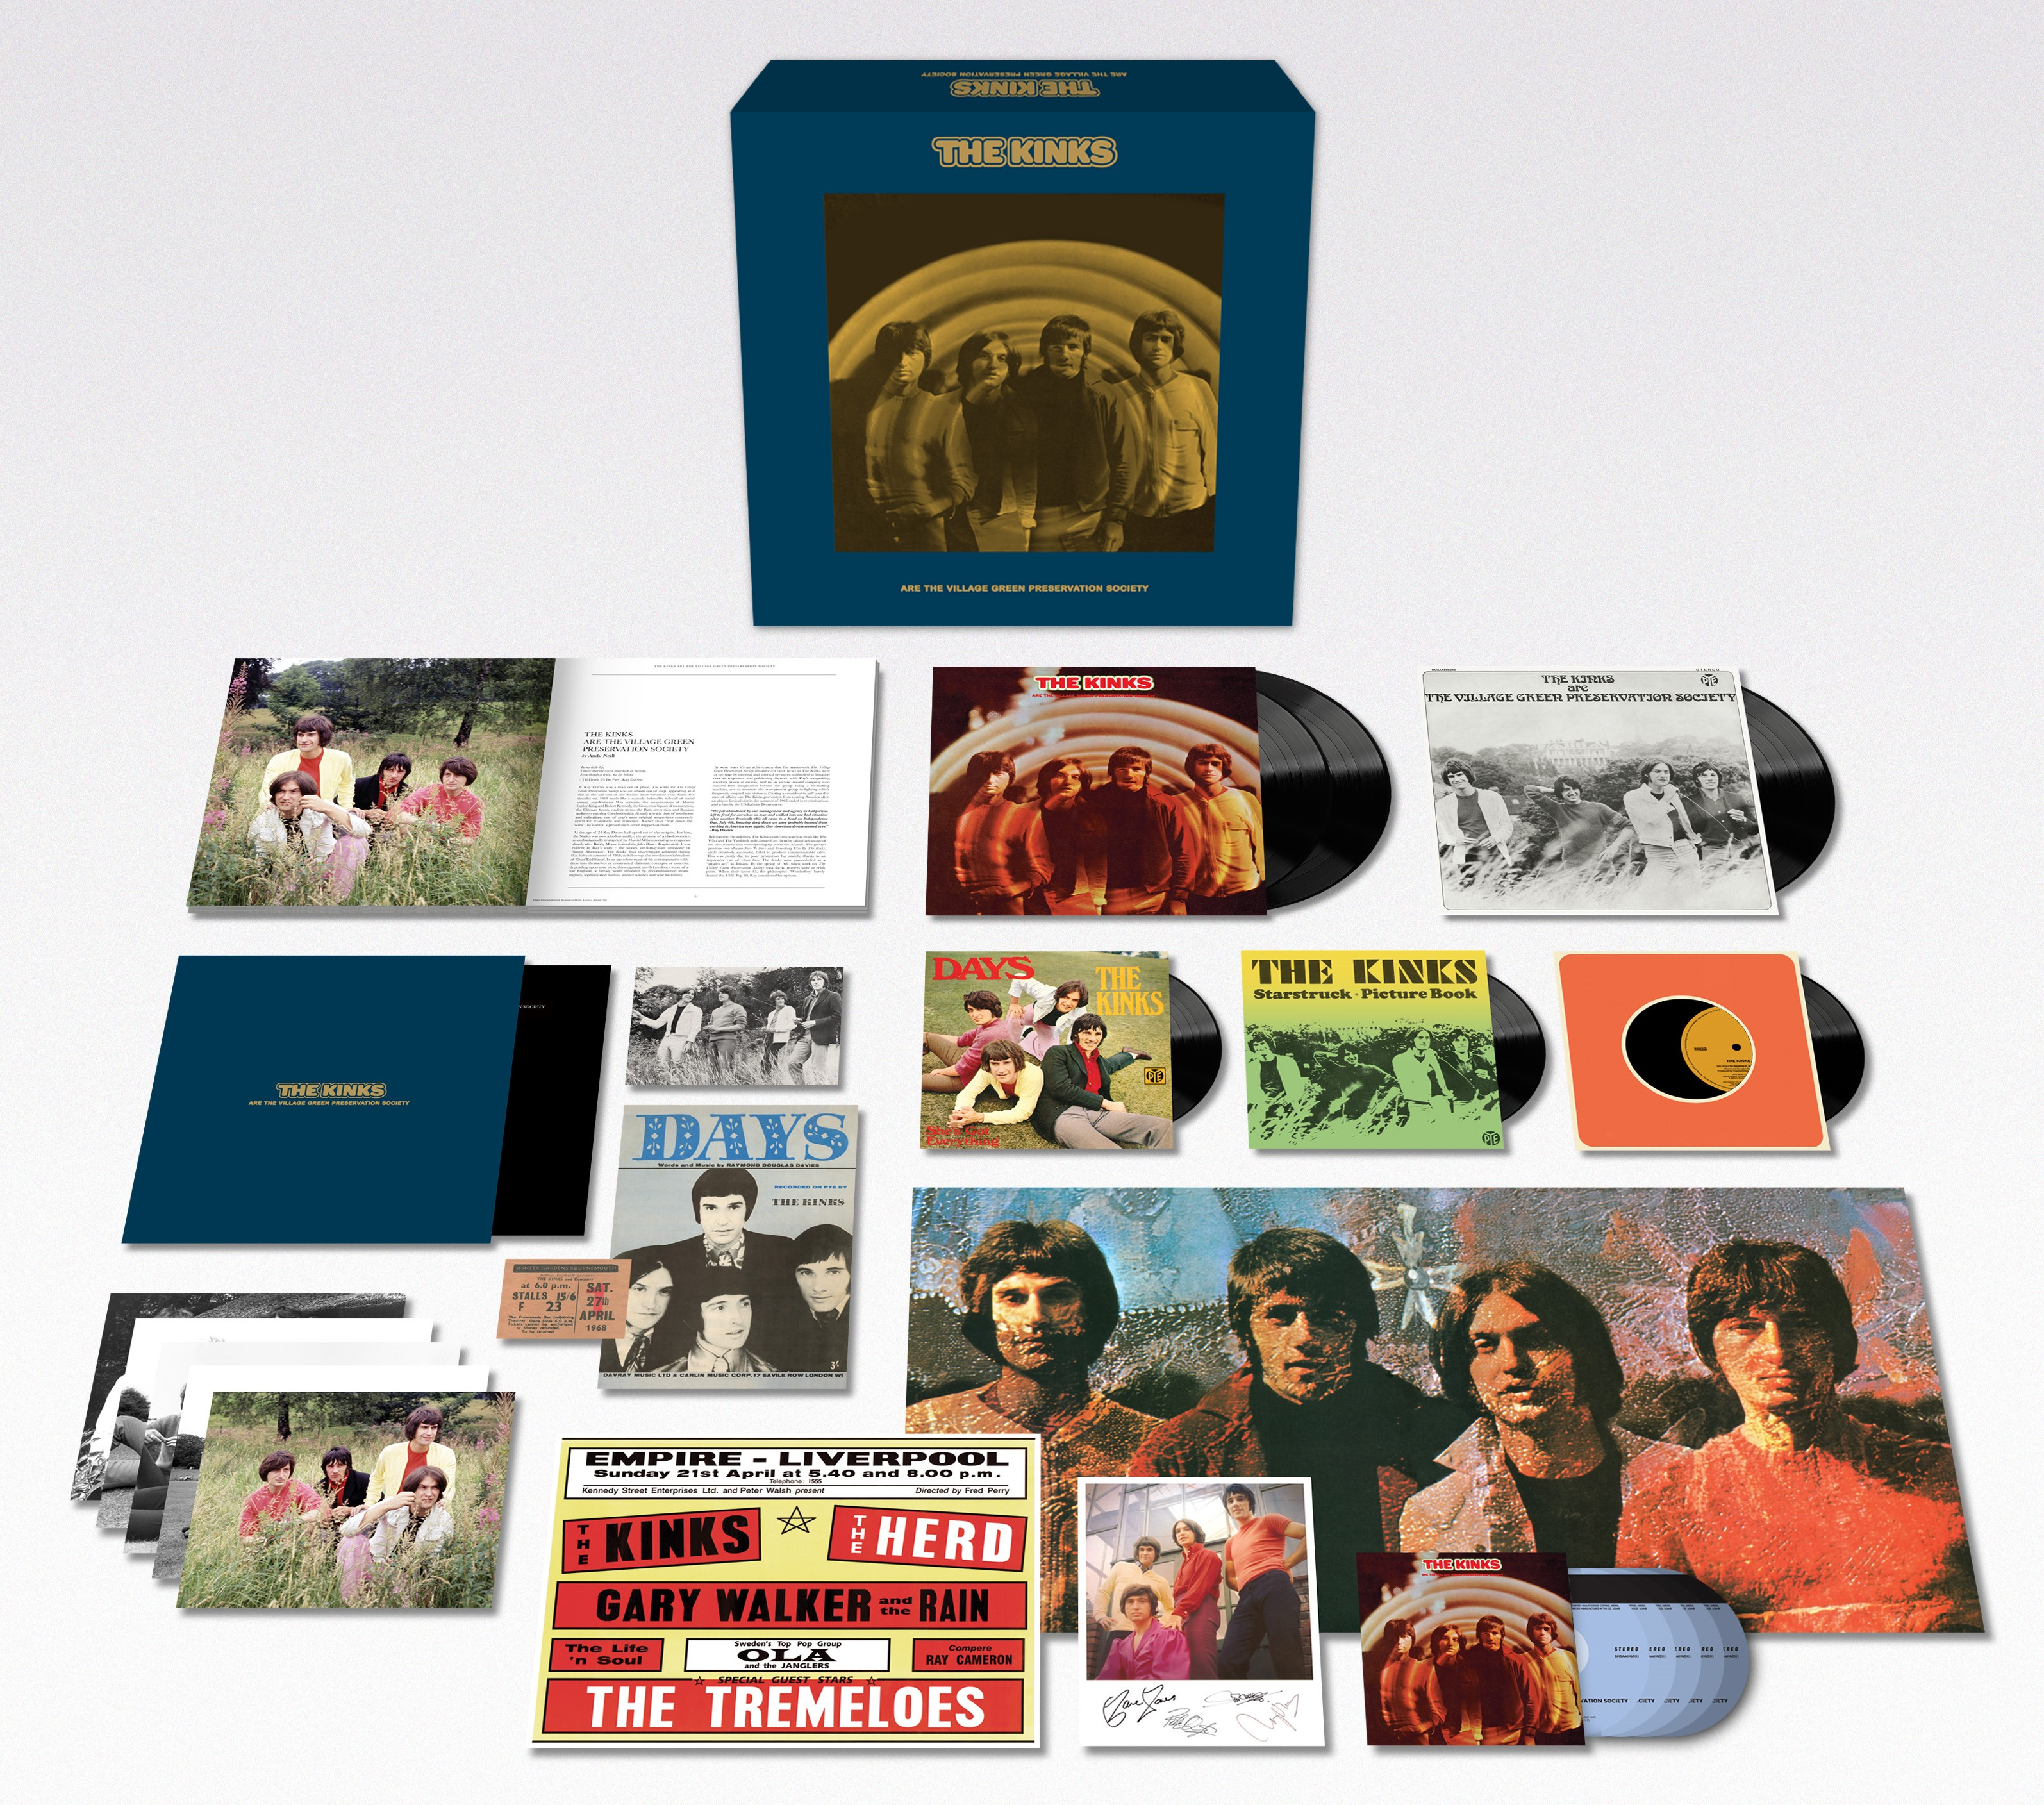 The Kinks Are The Village Green Preservation Society [SUPER DELUXE BOX SET] - The Kinks (USA)